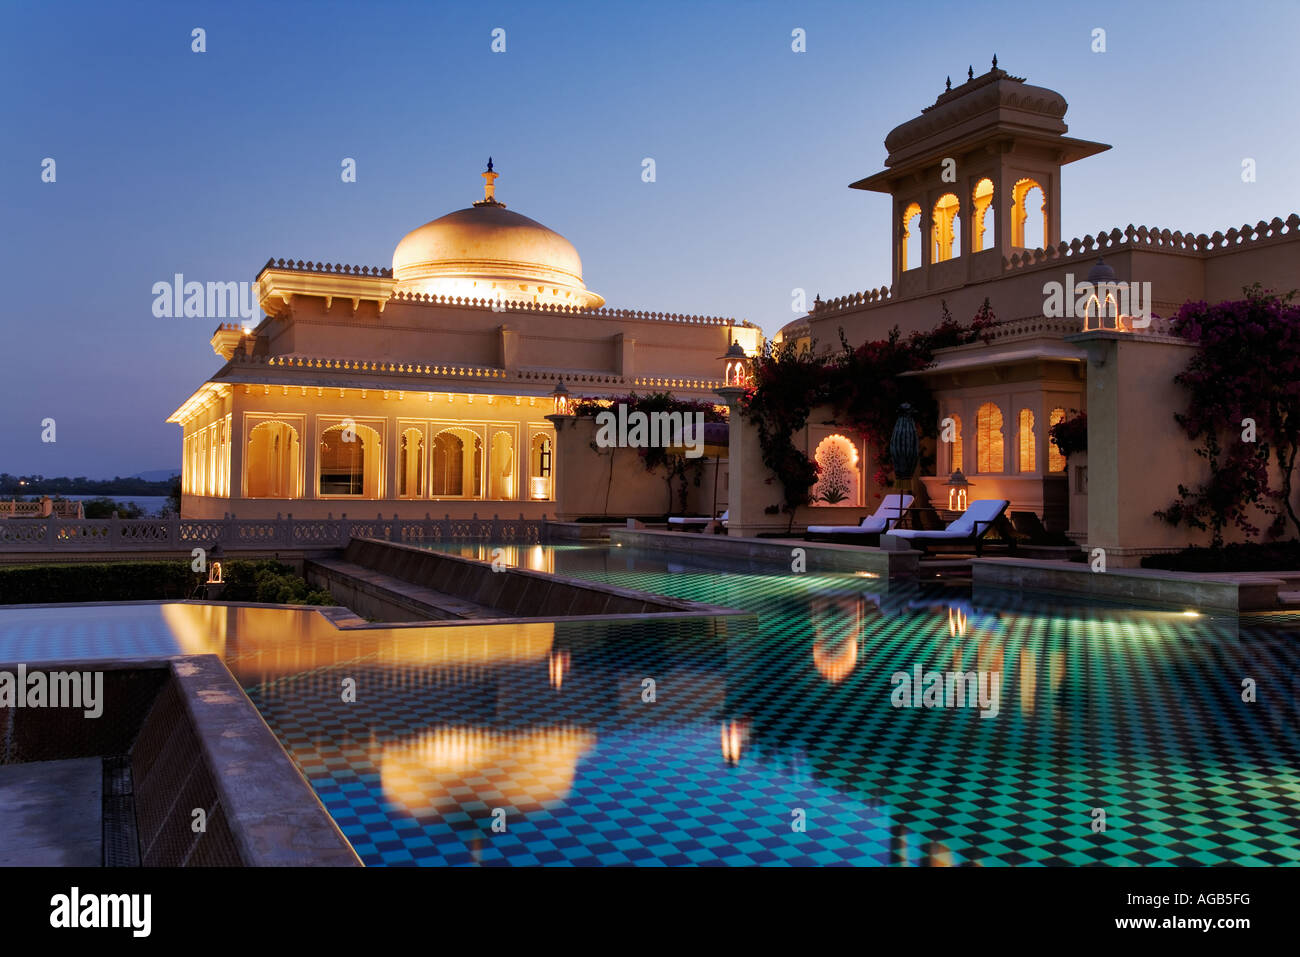 Exclusive Udaivilâs Oberoi Hotel at night overlooking the crystal clear pool Udaipur - Stock Image